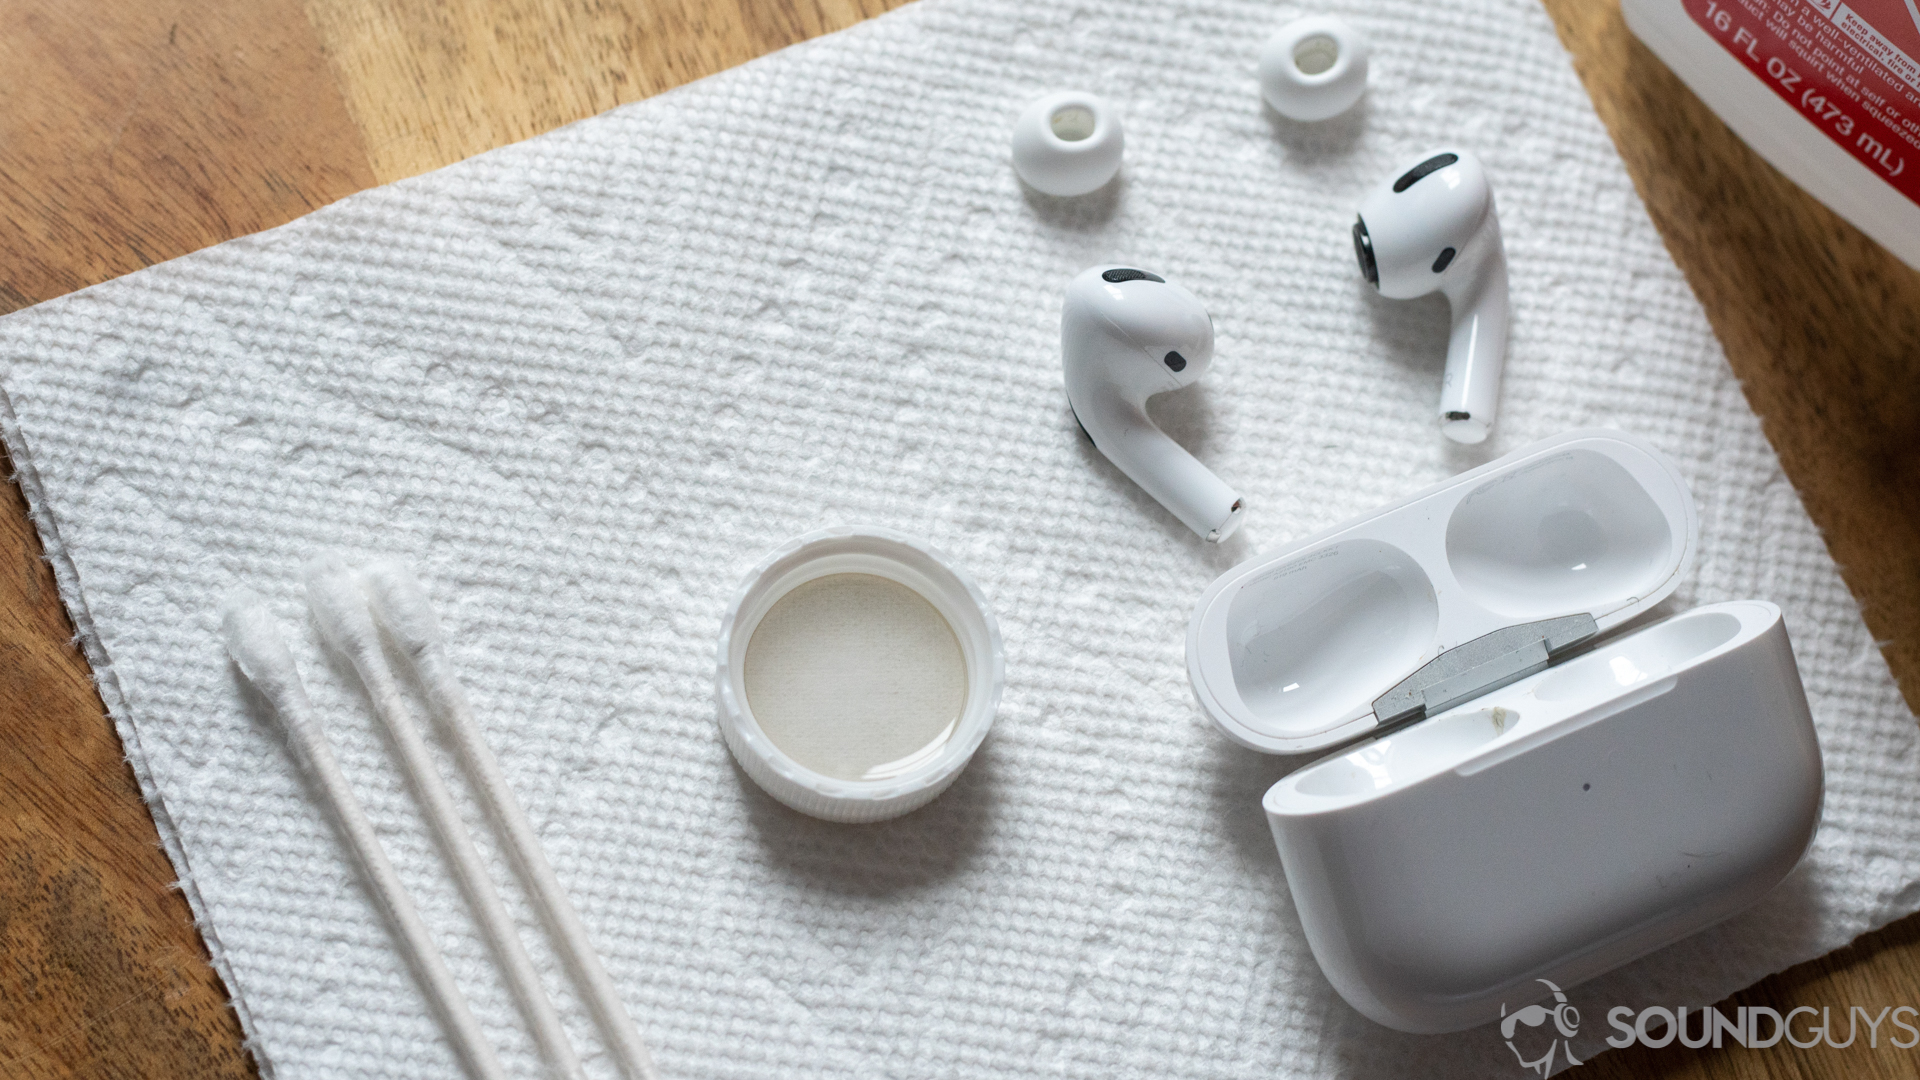 How to clean your AirPods Pro - SoundGuys